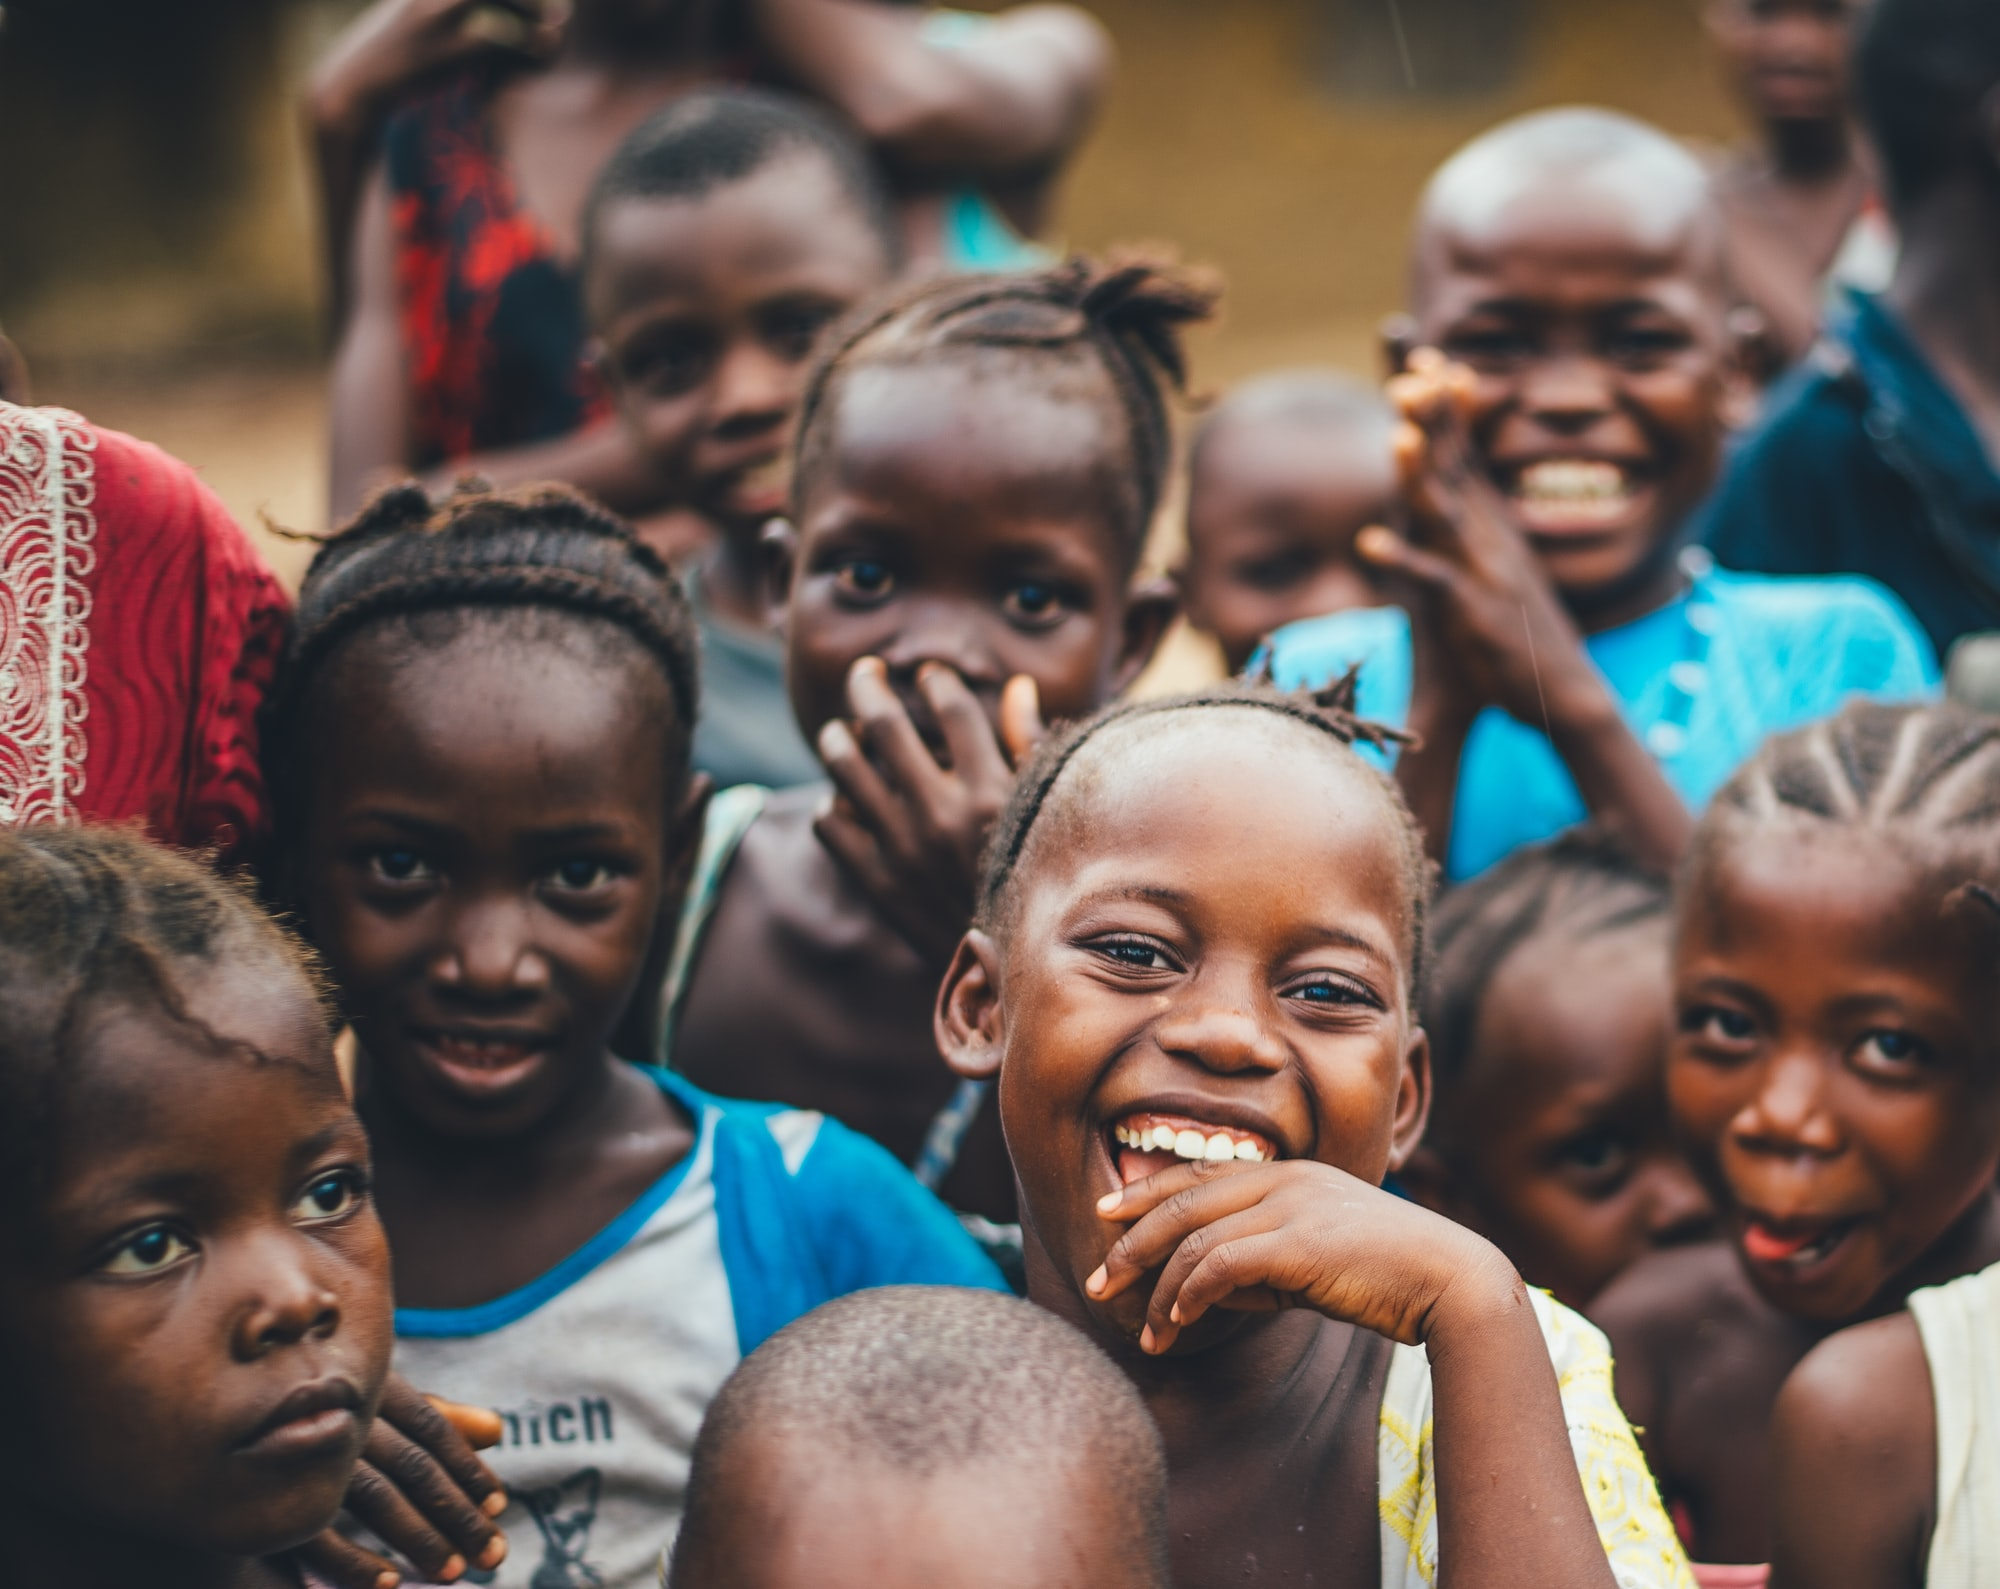 Taken on a trip in 2016 with World Vision to Sierra Leone. Releases obtained See all the photos in this set at: https://unsplash.com/collections/1329084/free-photos-of-sierra-leone